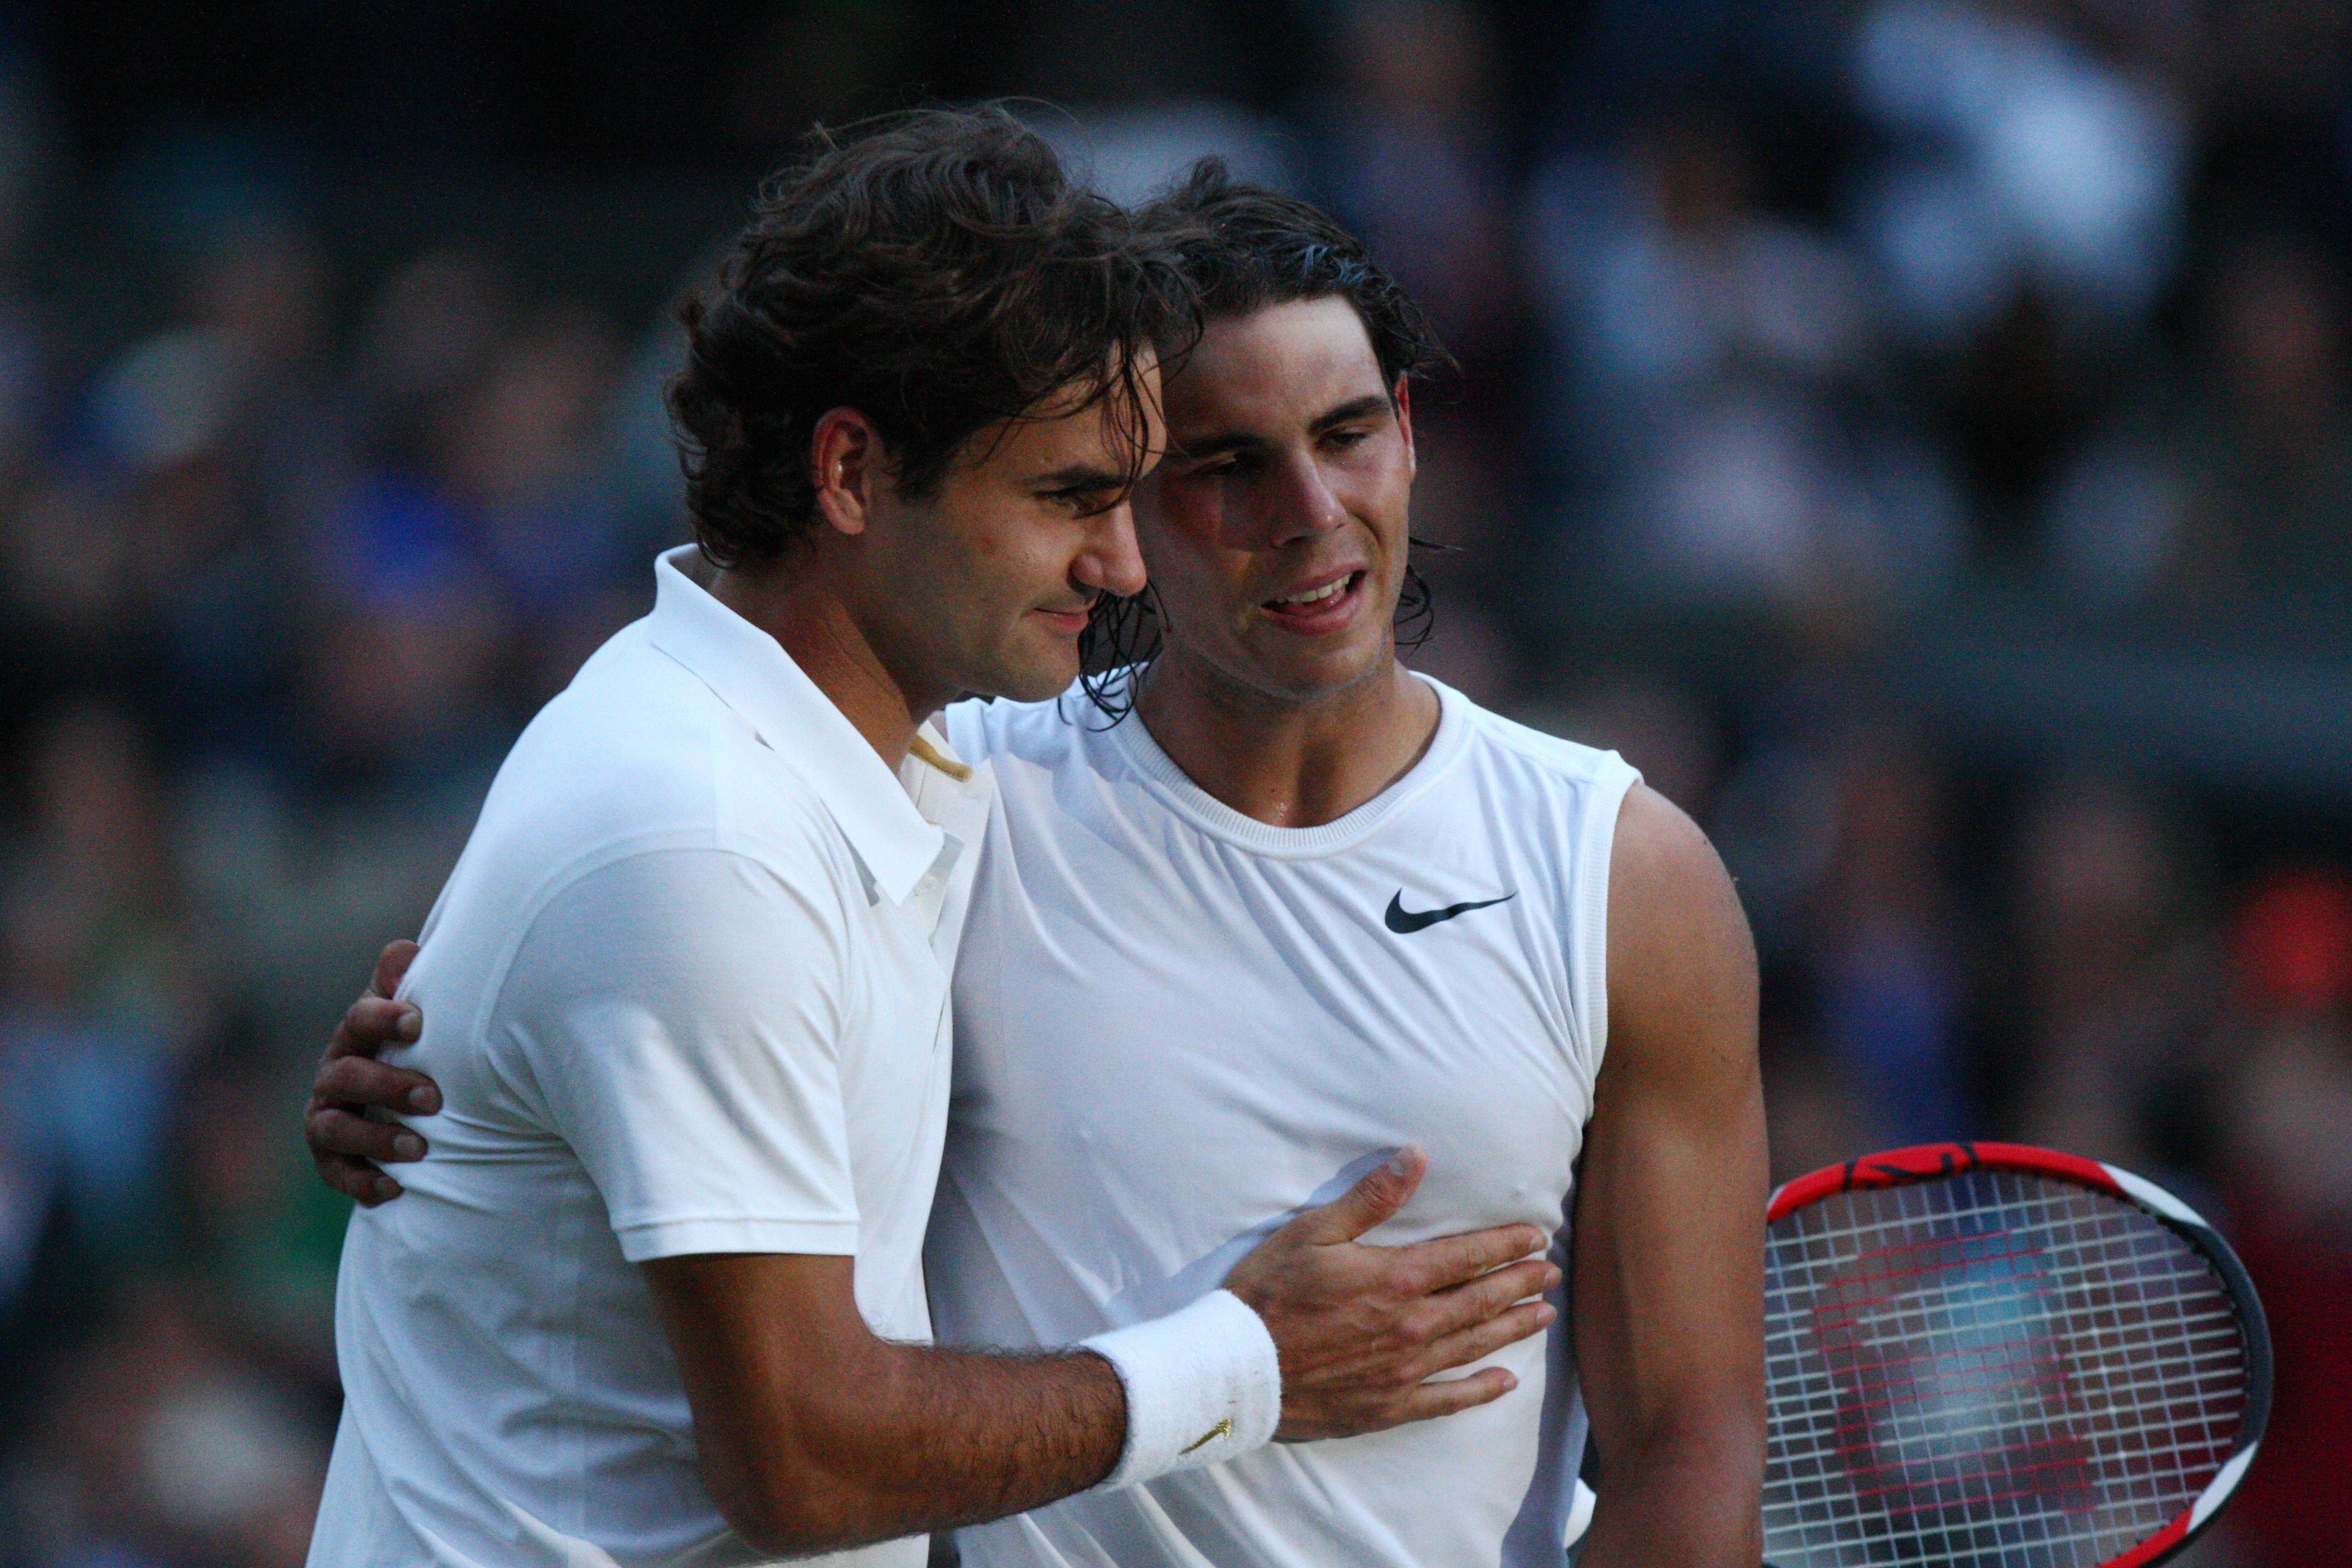 Roger Federer and Rafael Nadal meet in historic Wimbledon rematch